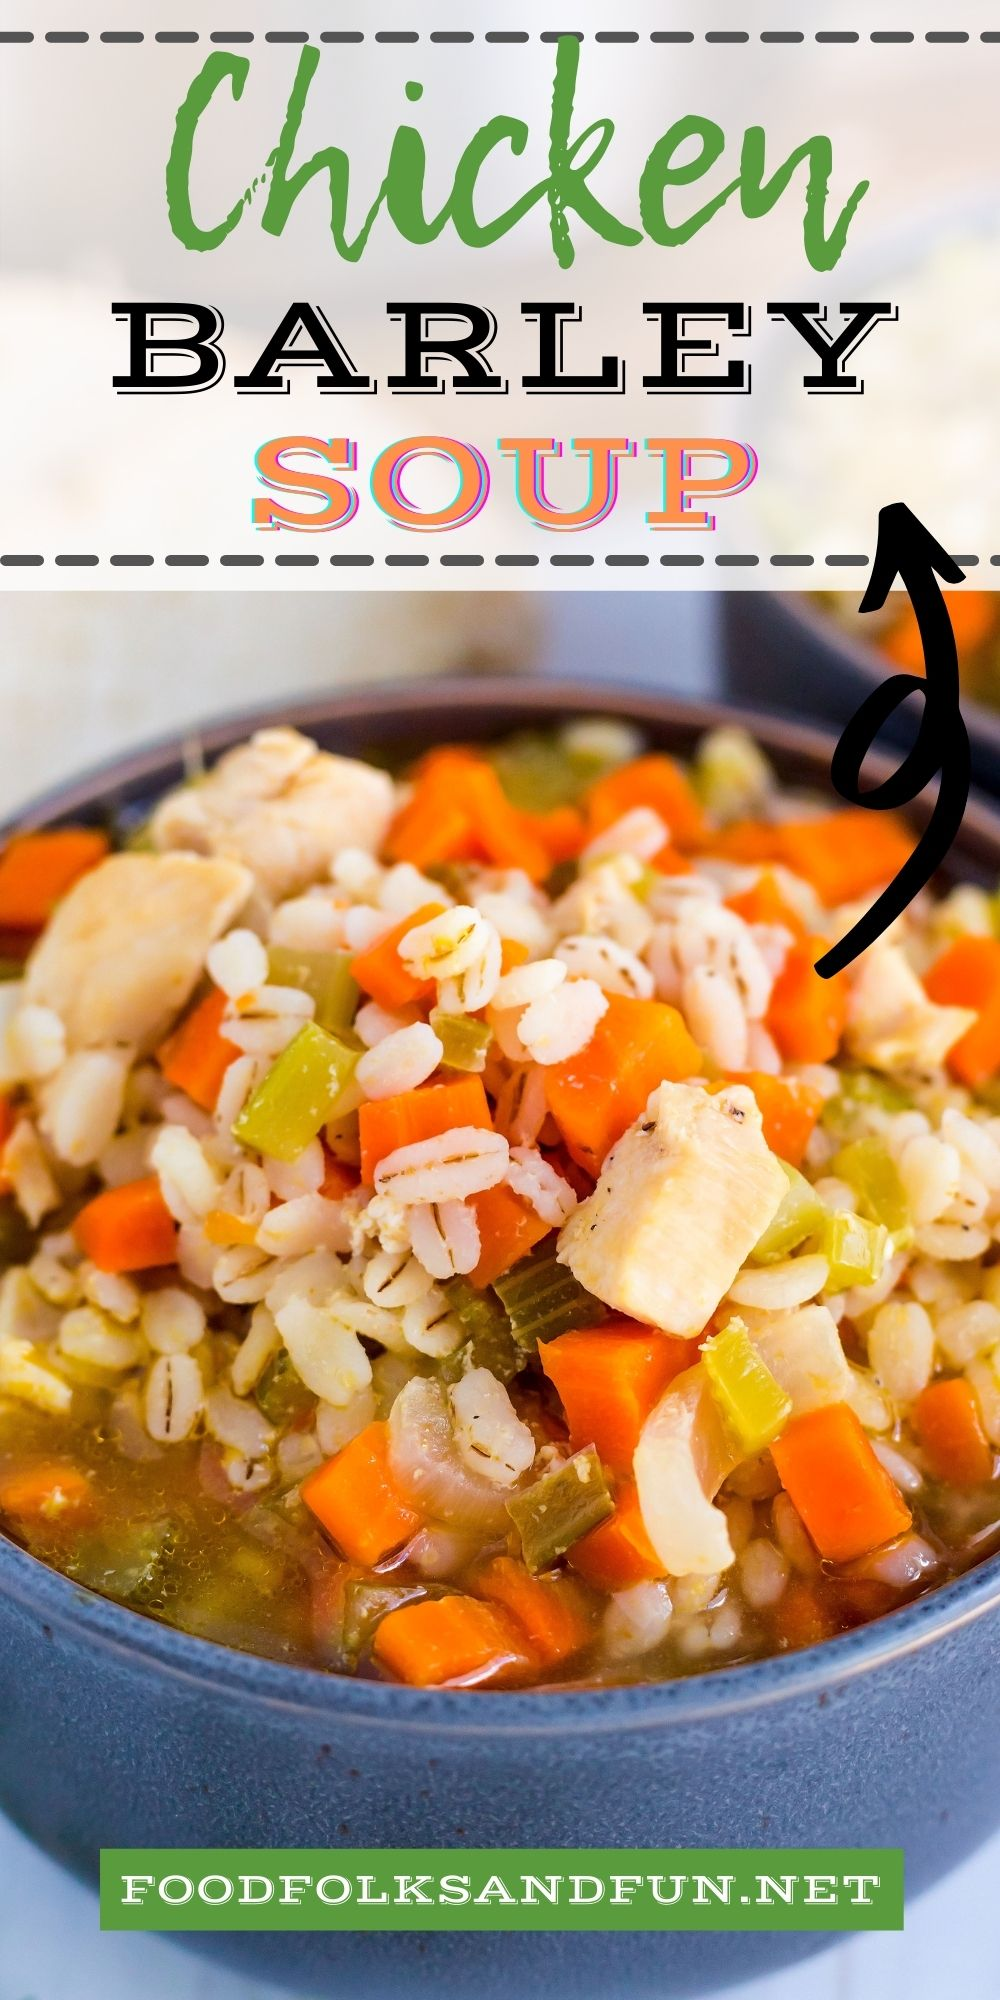 This flavorful Chicken Barley Soup is a comfort food classic that is perfect for soup season. It's quick and easy to make and full of delicious veggies. via @foodfolksandfun